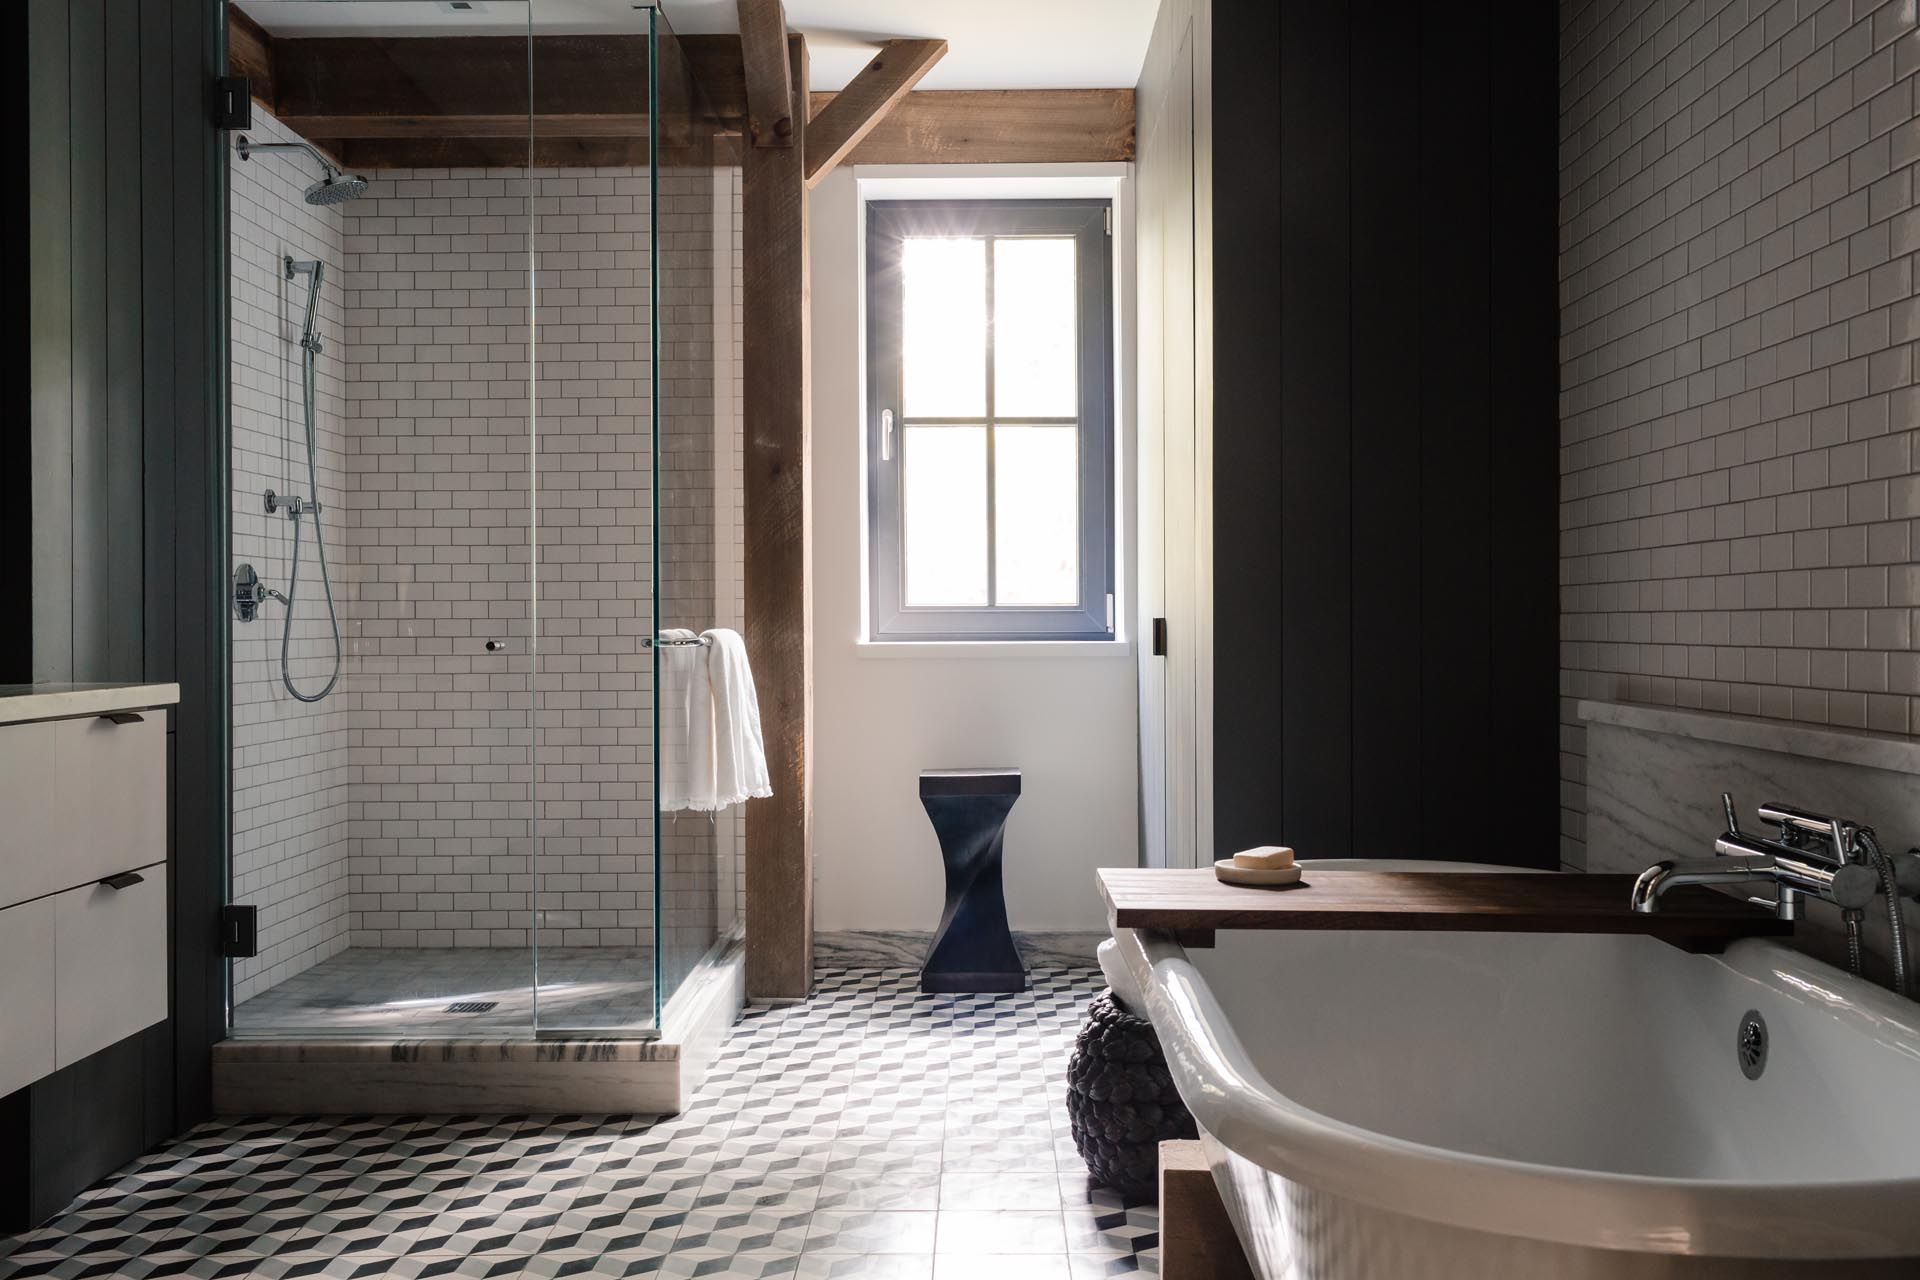 A contemporary bathroom with a glass-enclosed shower and a freestanding bathtub.